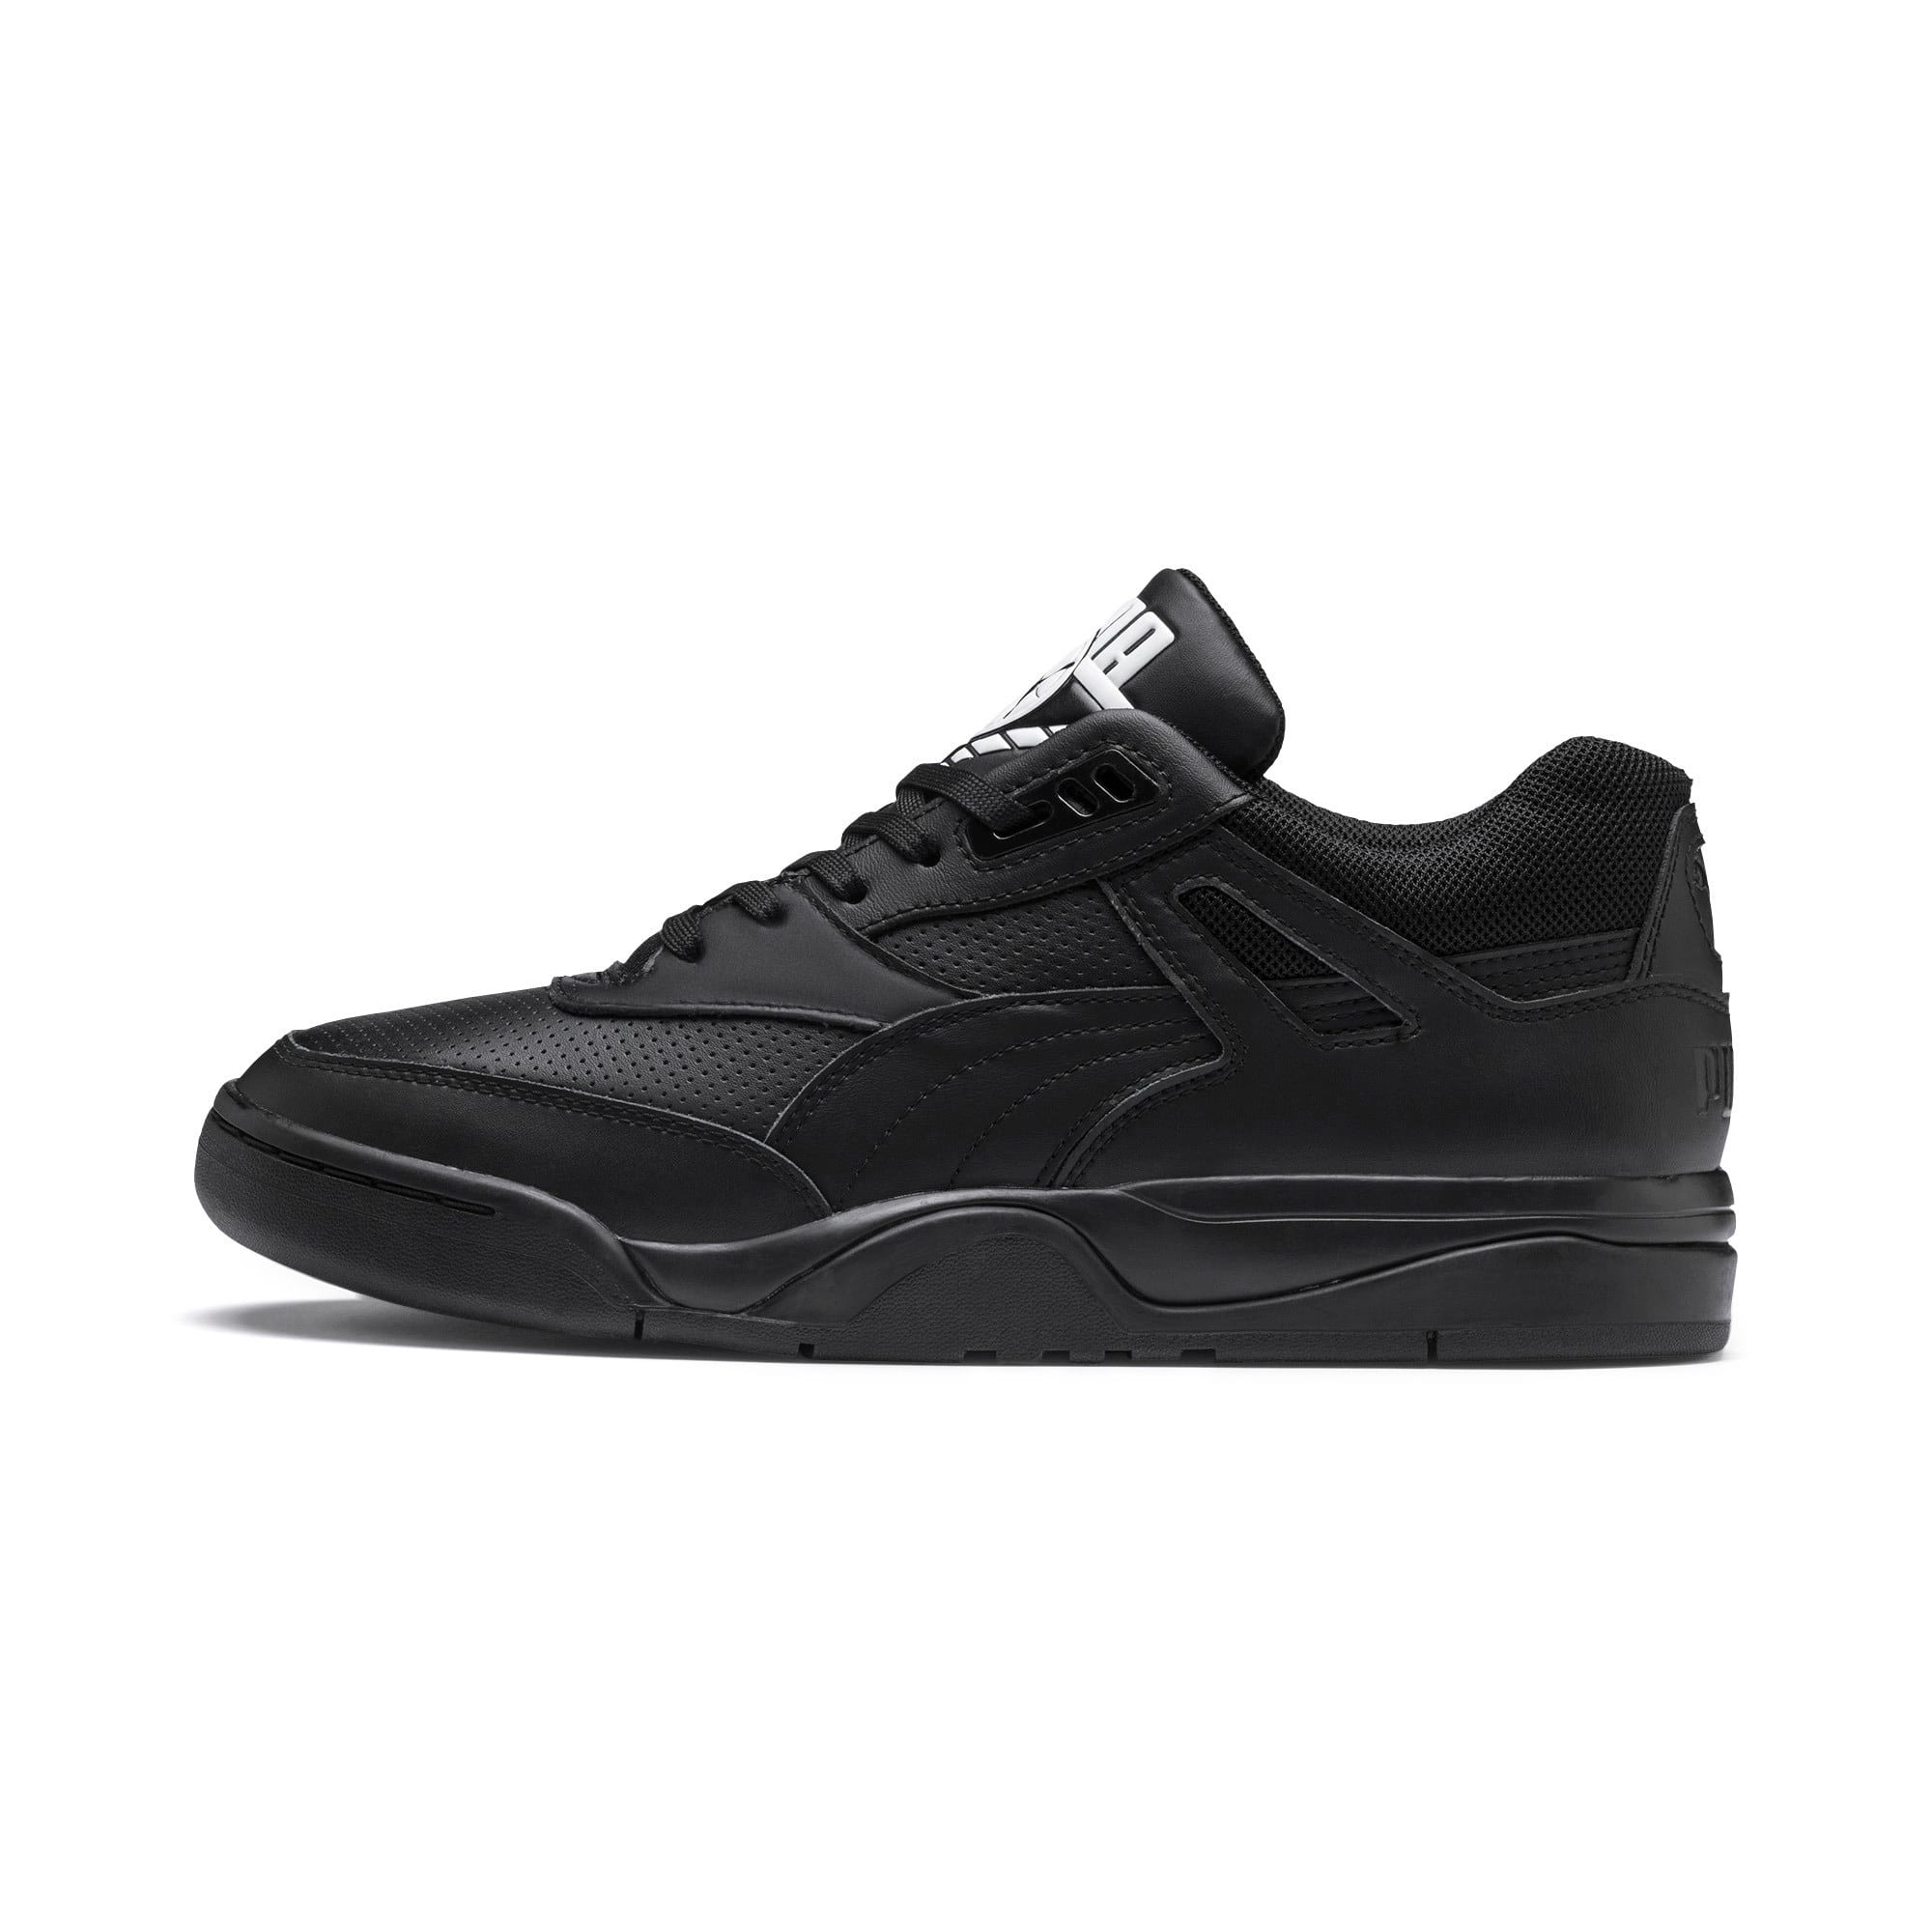 Thumbnail 1 of Palace Guard Sneakers, Puma Black-Puma White, medium